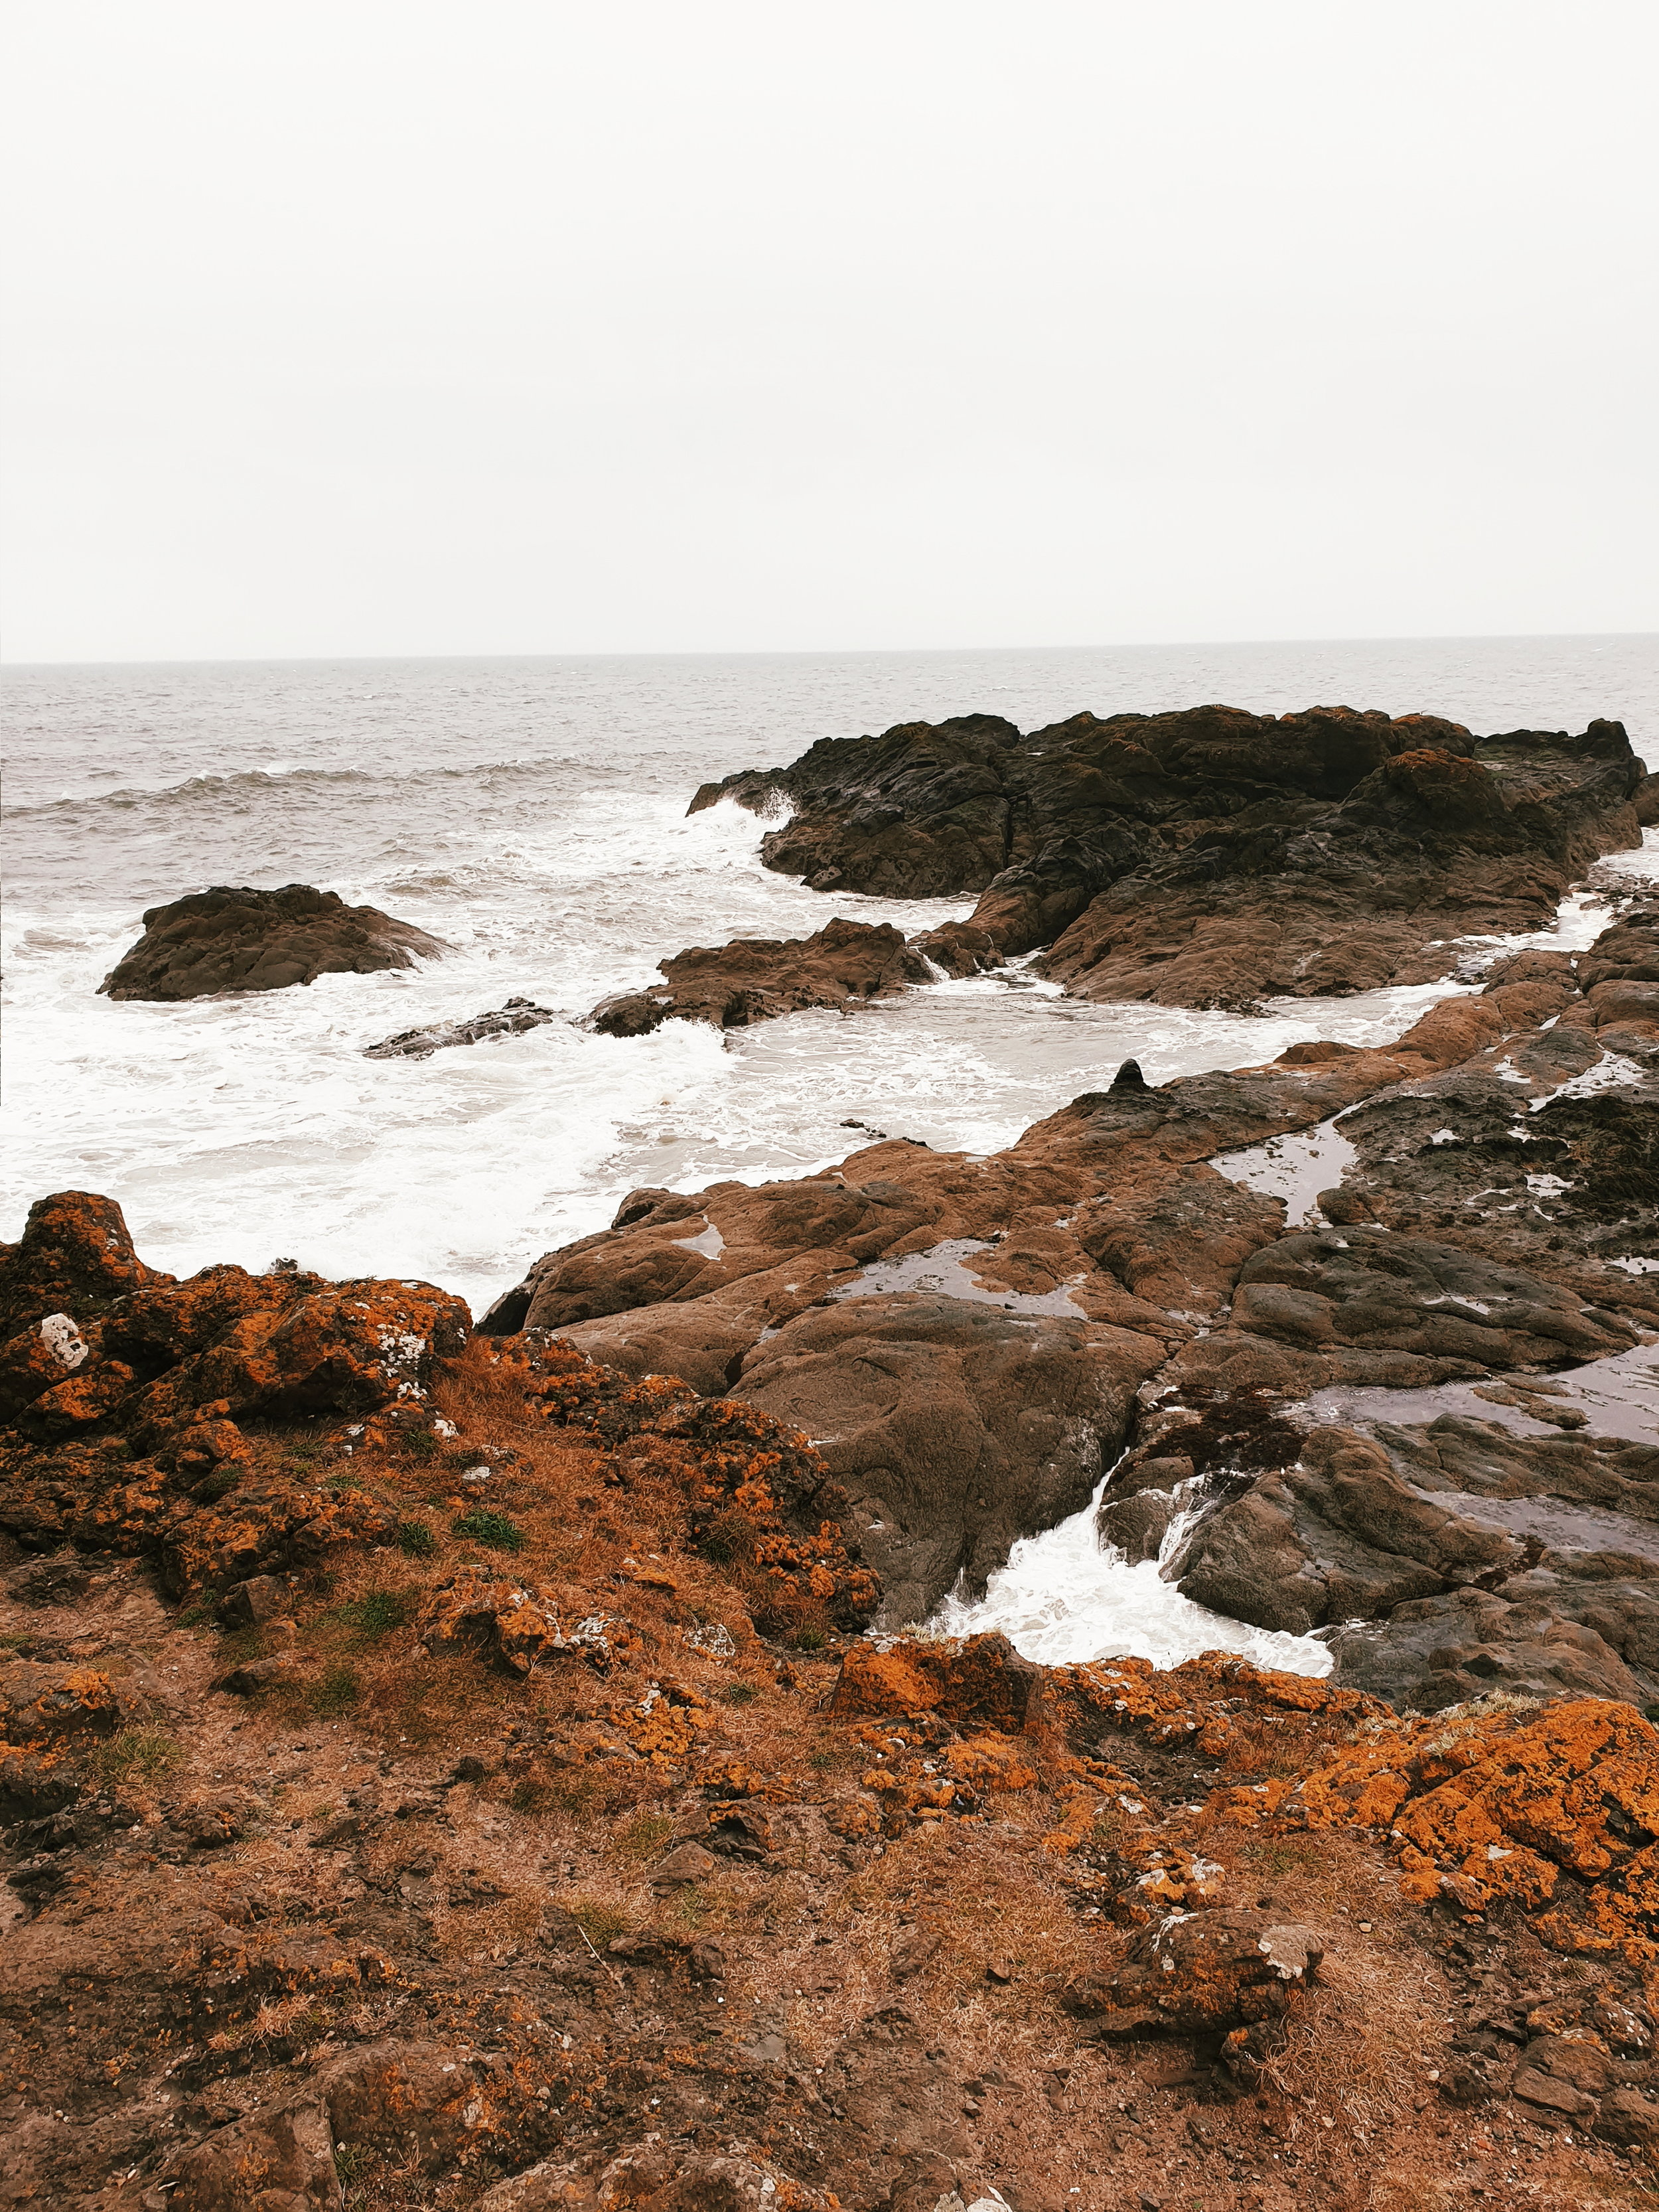 There is also the option of further exploring the coast on the Elie Chain Walk